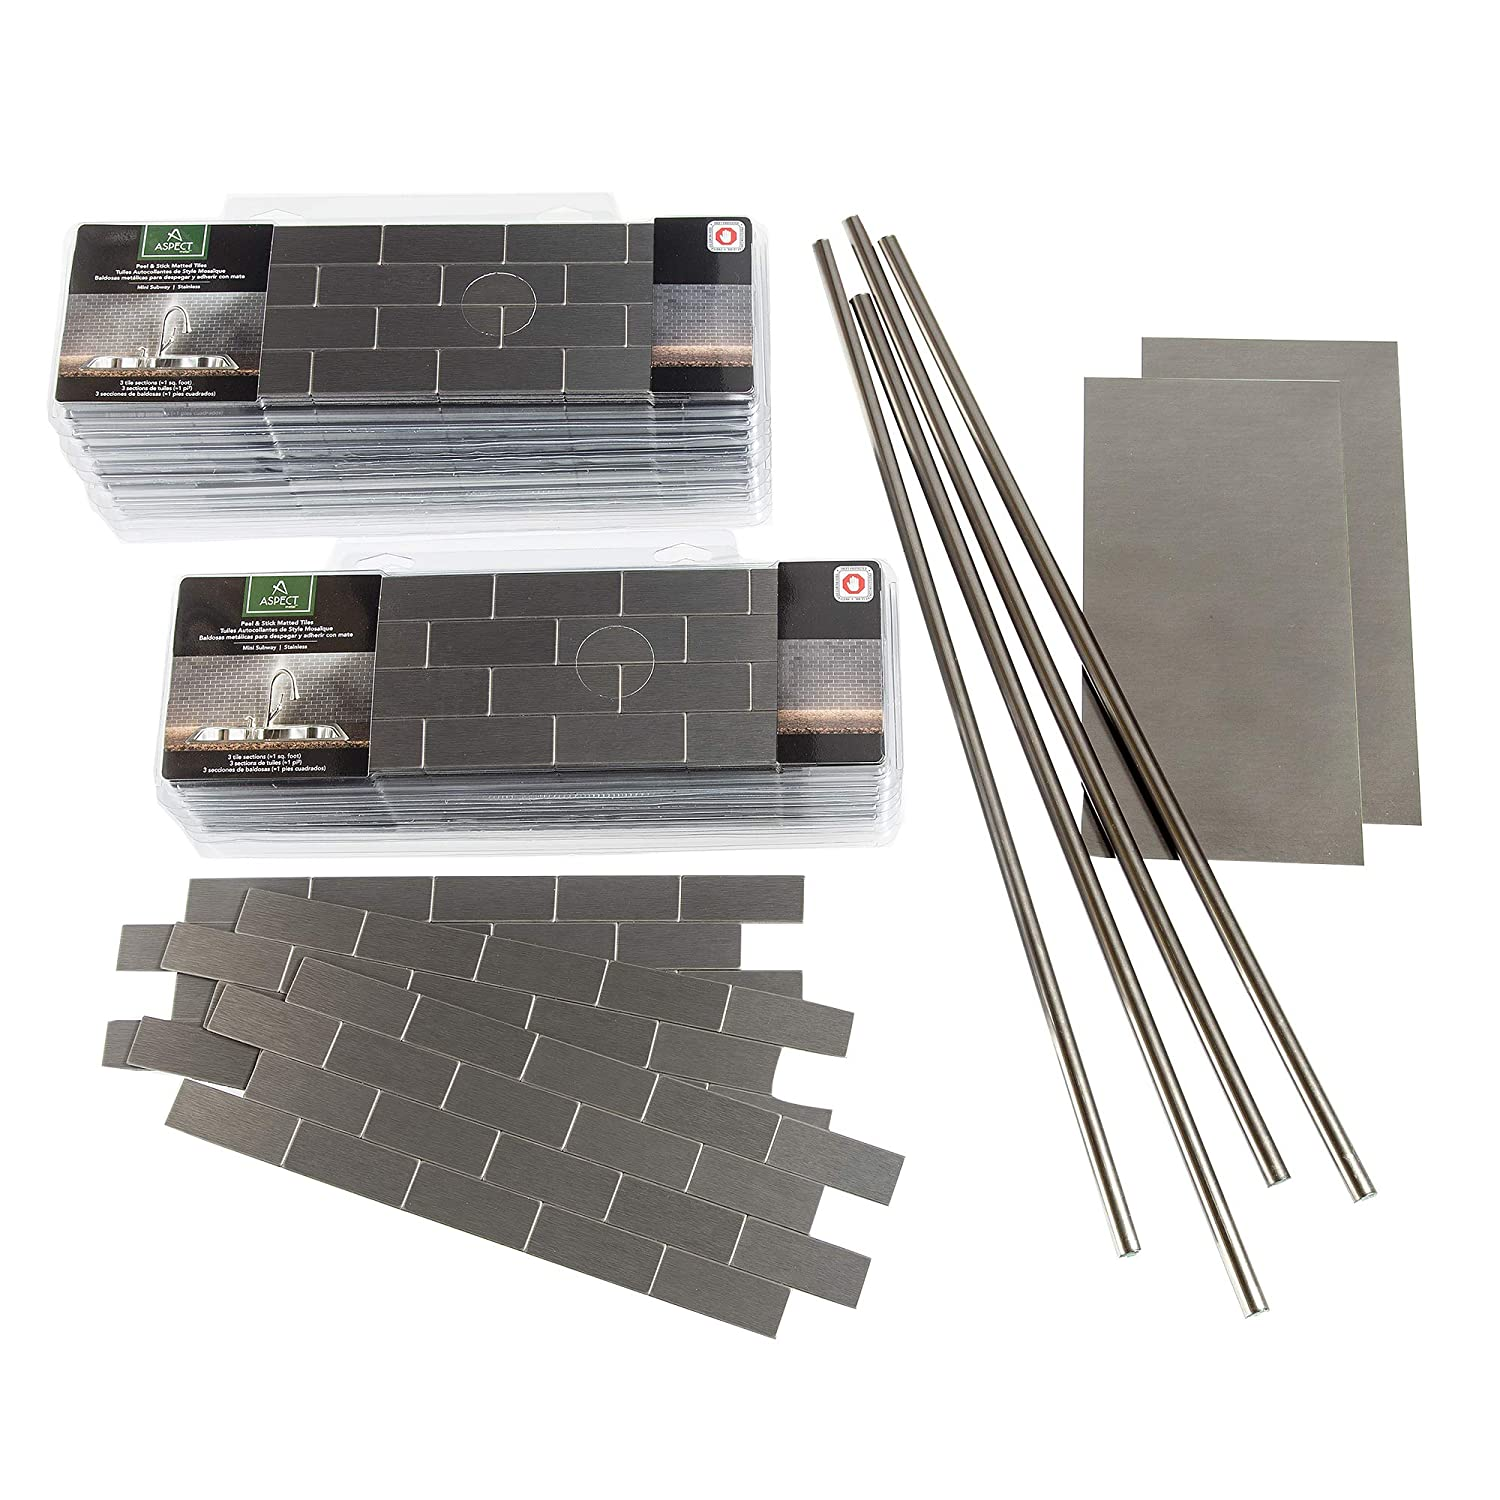 Aspect Peel and Stick Backsplash 12inx4in Subway Stainless Matted Metal Tile 15 Sq Ft Kit for Kitchen and Bathrooms